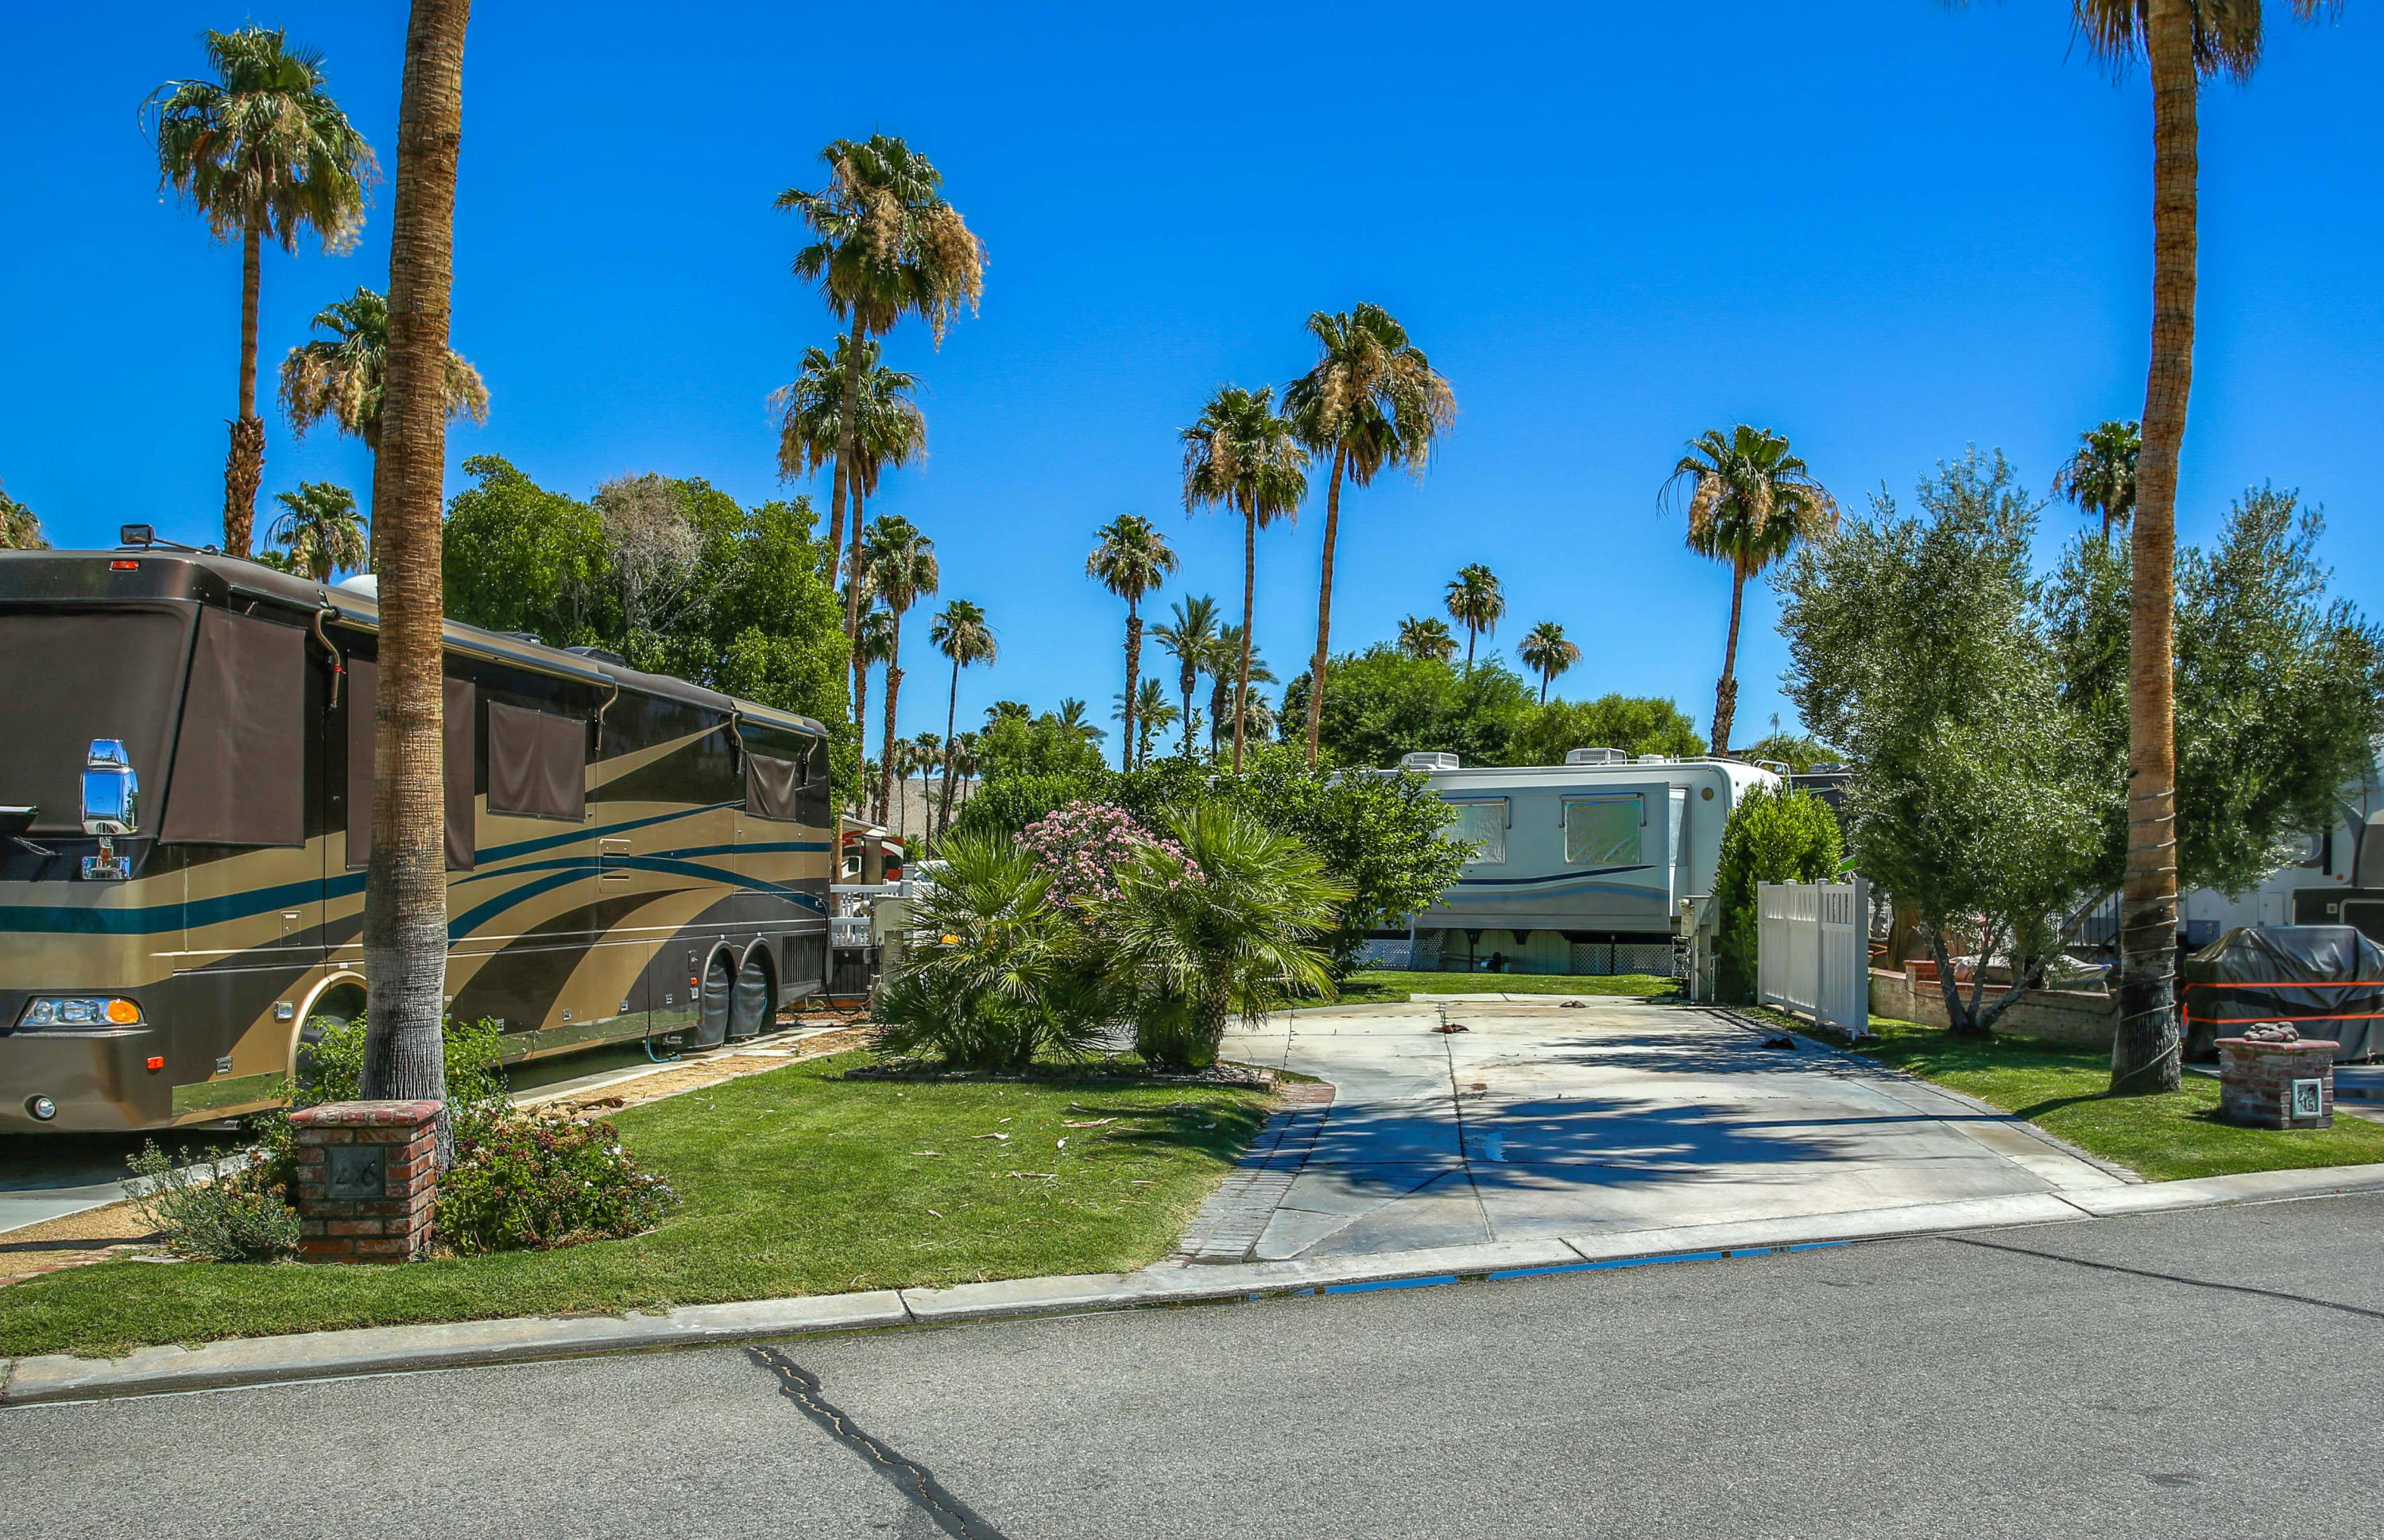 69411 Ramon Road, Cathedral City, California 92234, ,Land,For Sale,69411 Ramon Road,219044325